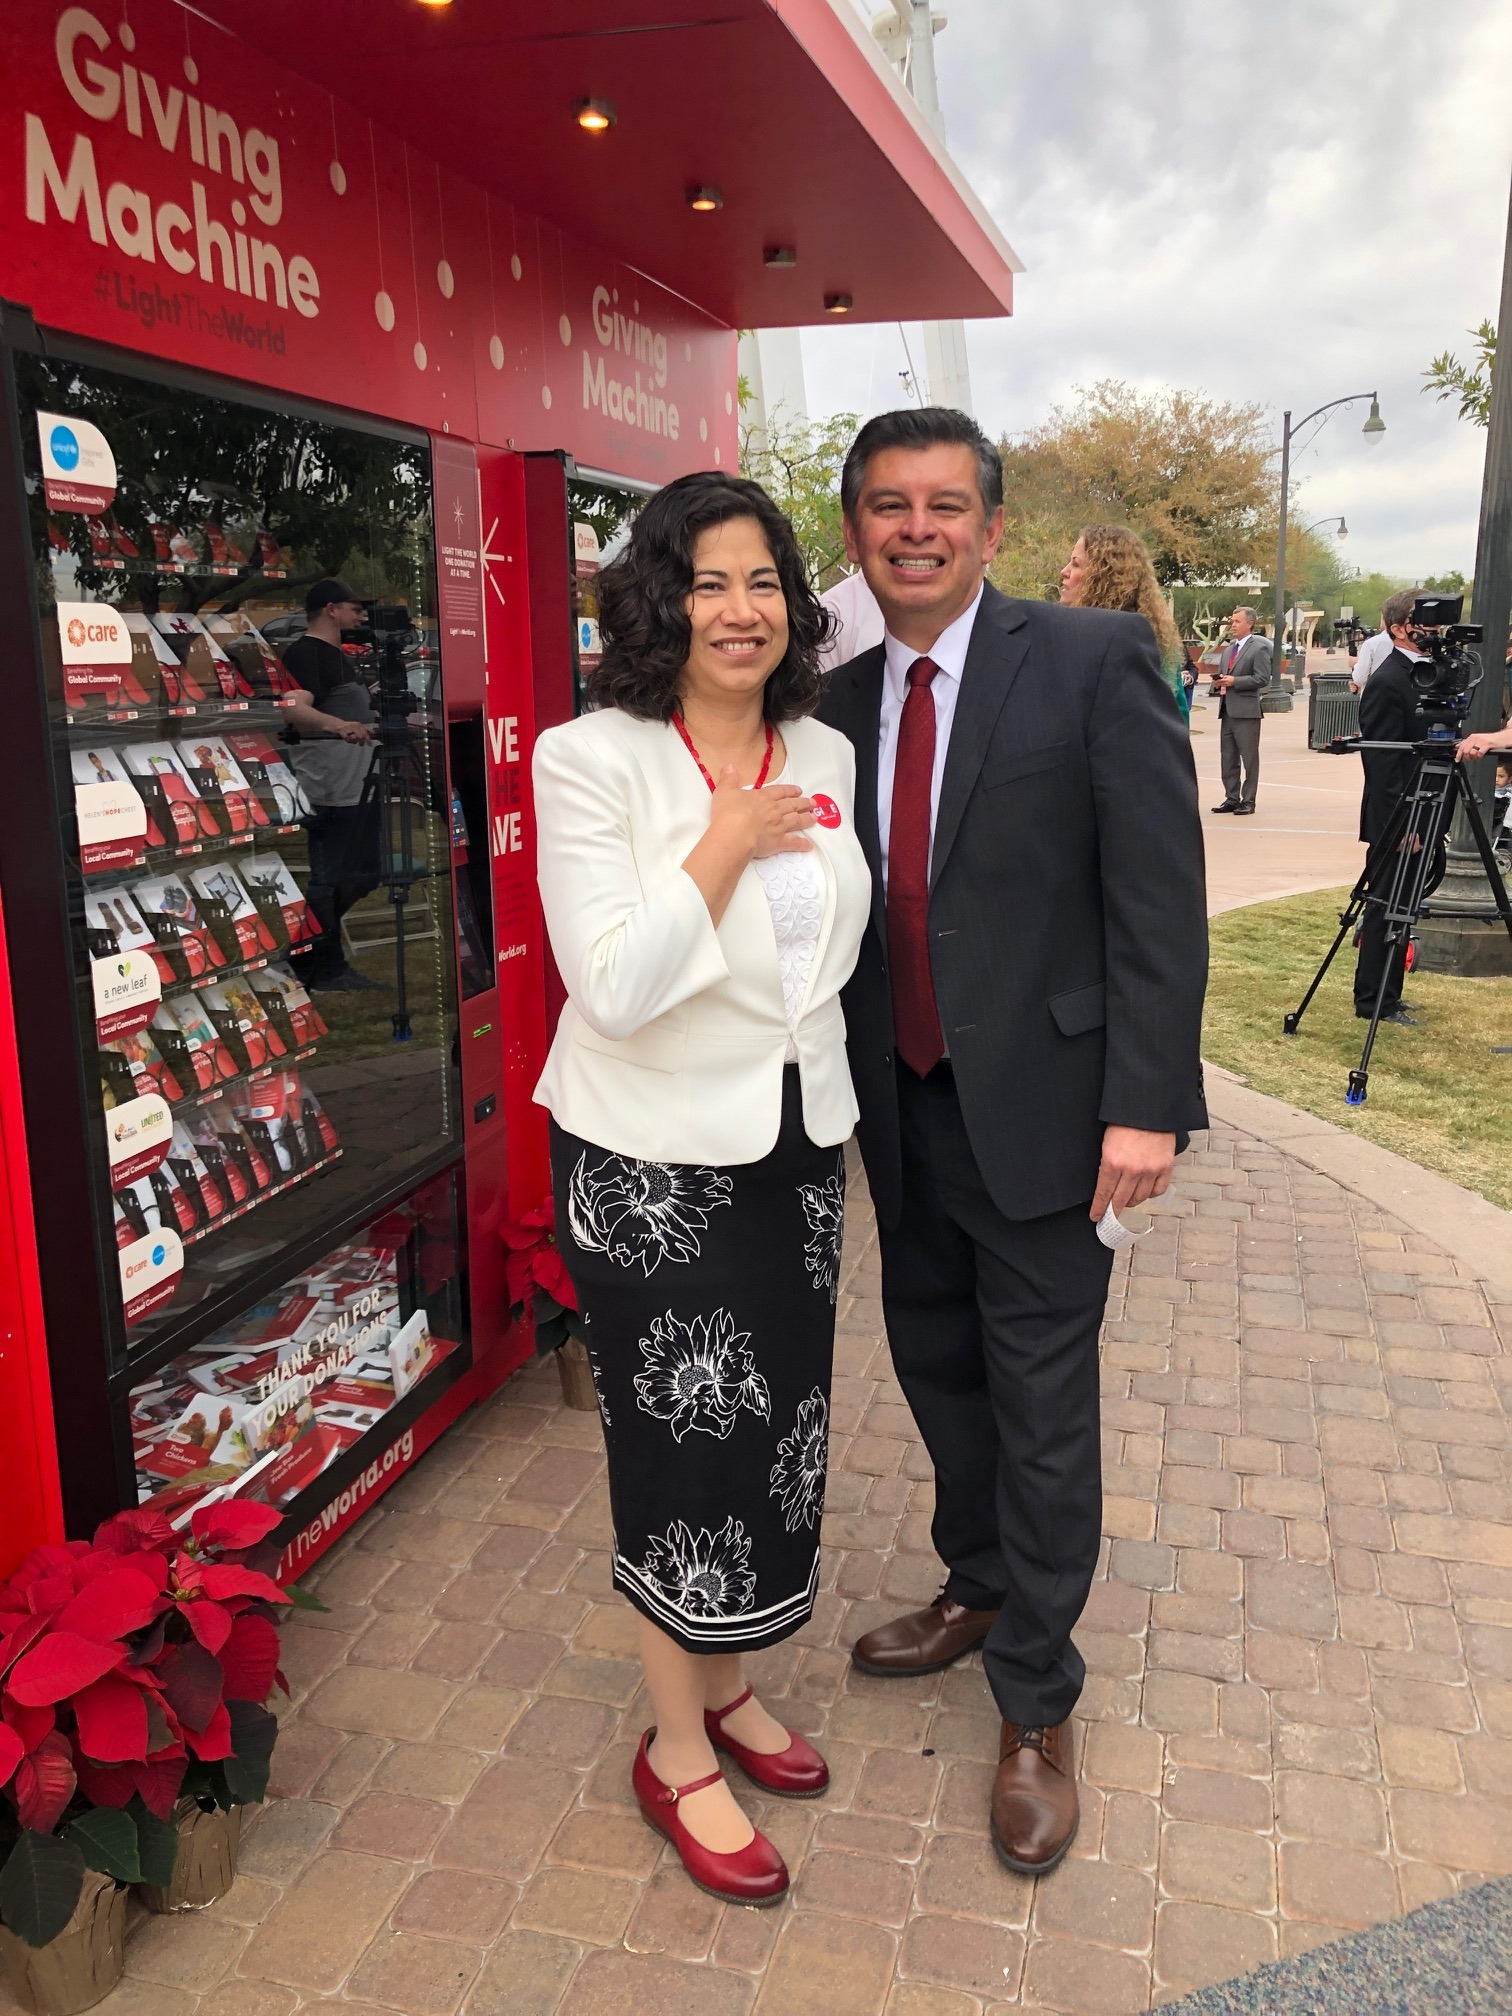 Sister Reyna Aburto of the Relief Society general presidency and her husband, Brother Carlos Aburto, visit with the media following the ribbon-cutting ceremony for giving machines in Gilbert, Arizona. Part of the Church's popular #LightTheWorld campaign, the machines opened in Gilbert on Thursday, Nov. 29.